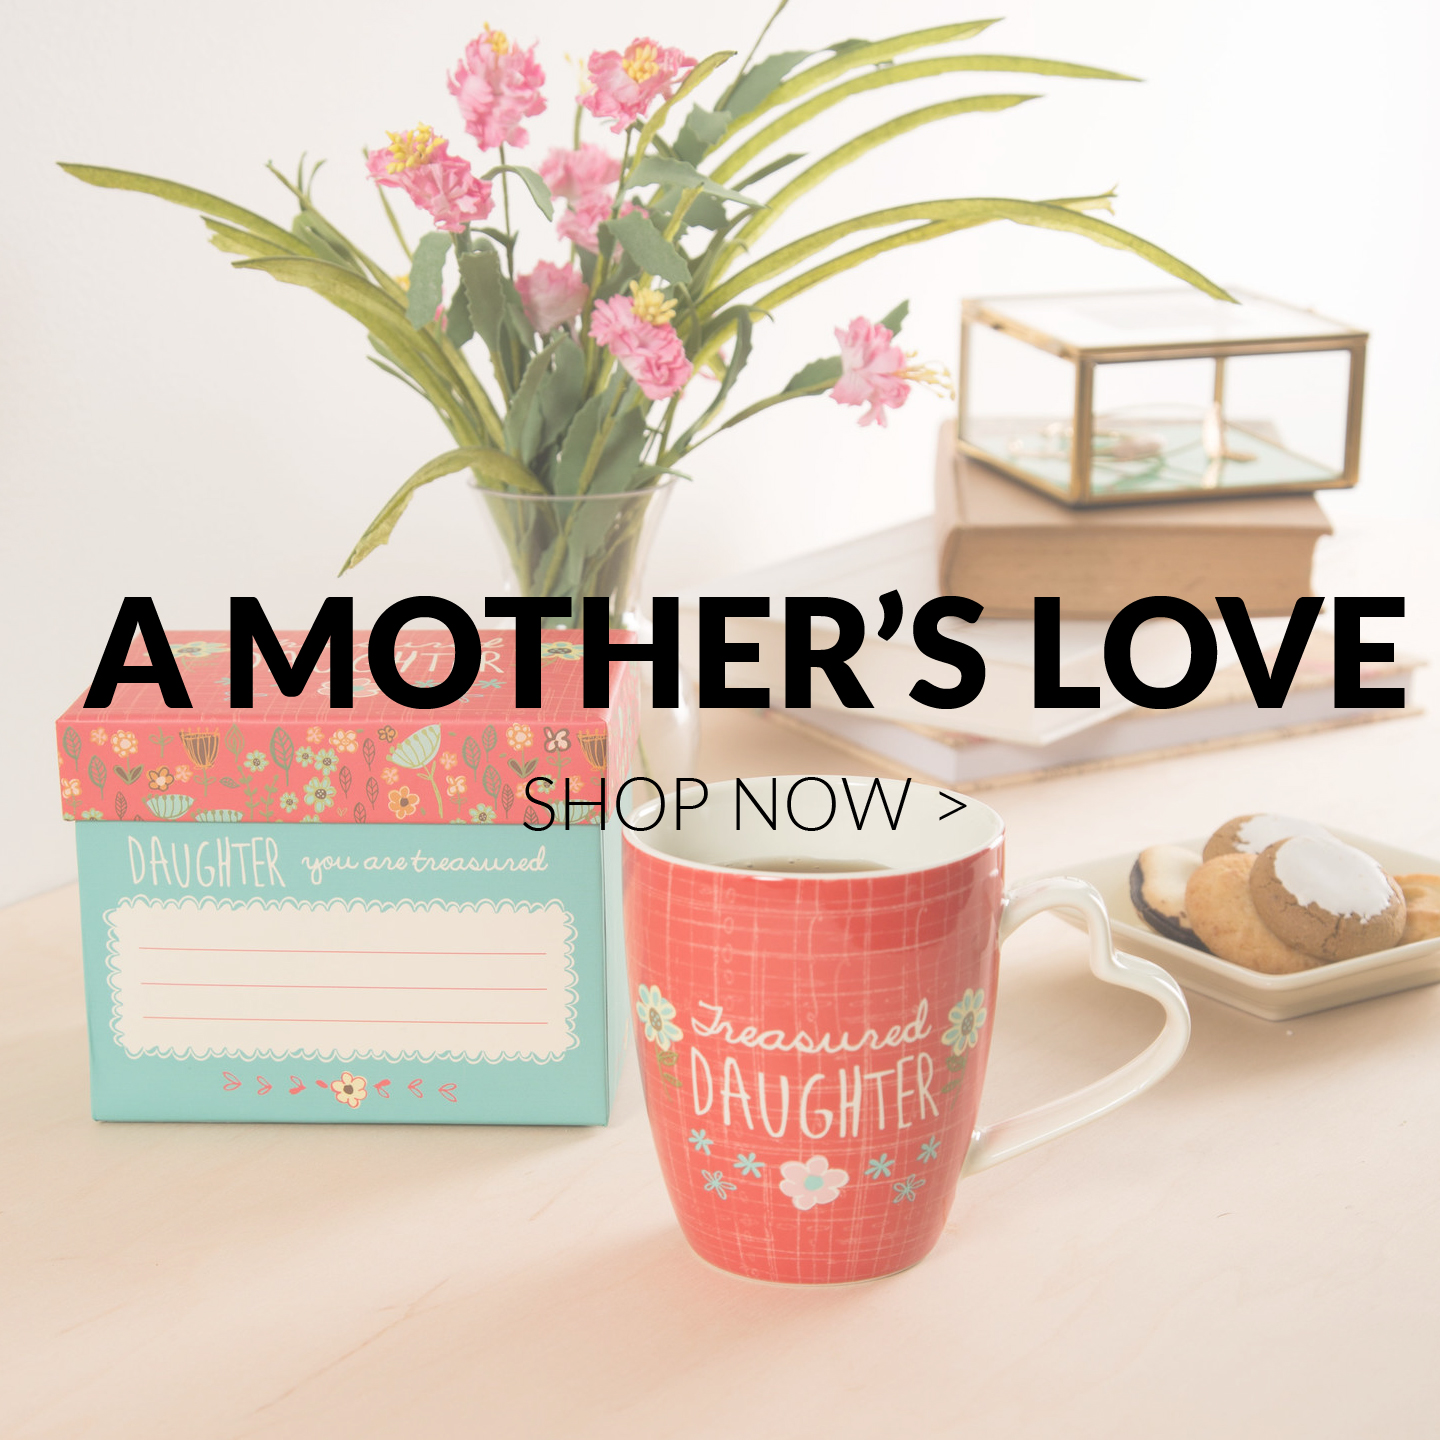 A Mother's Love by Amylee Weeks